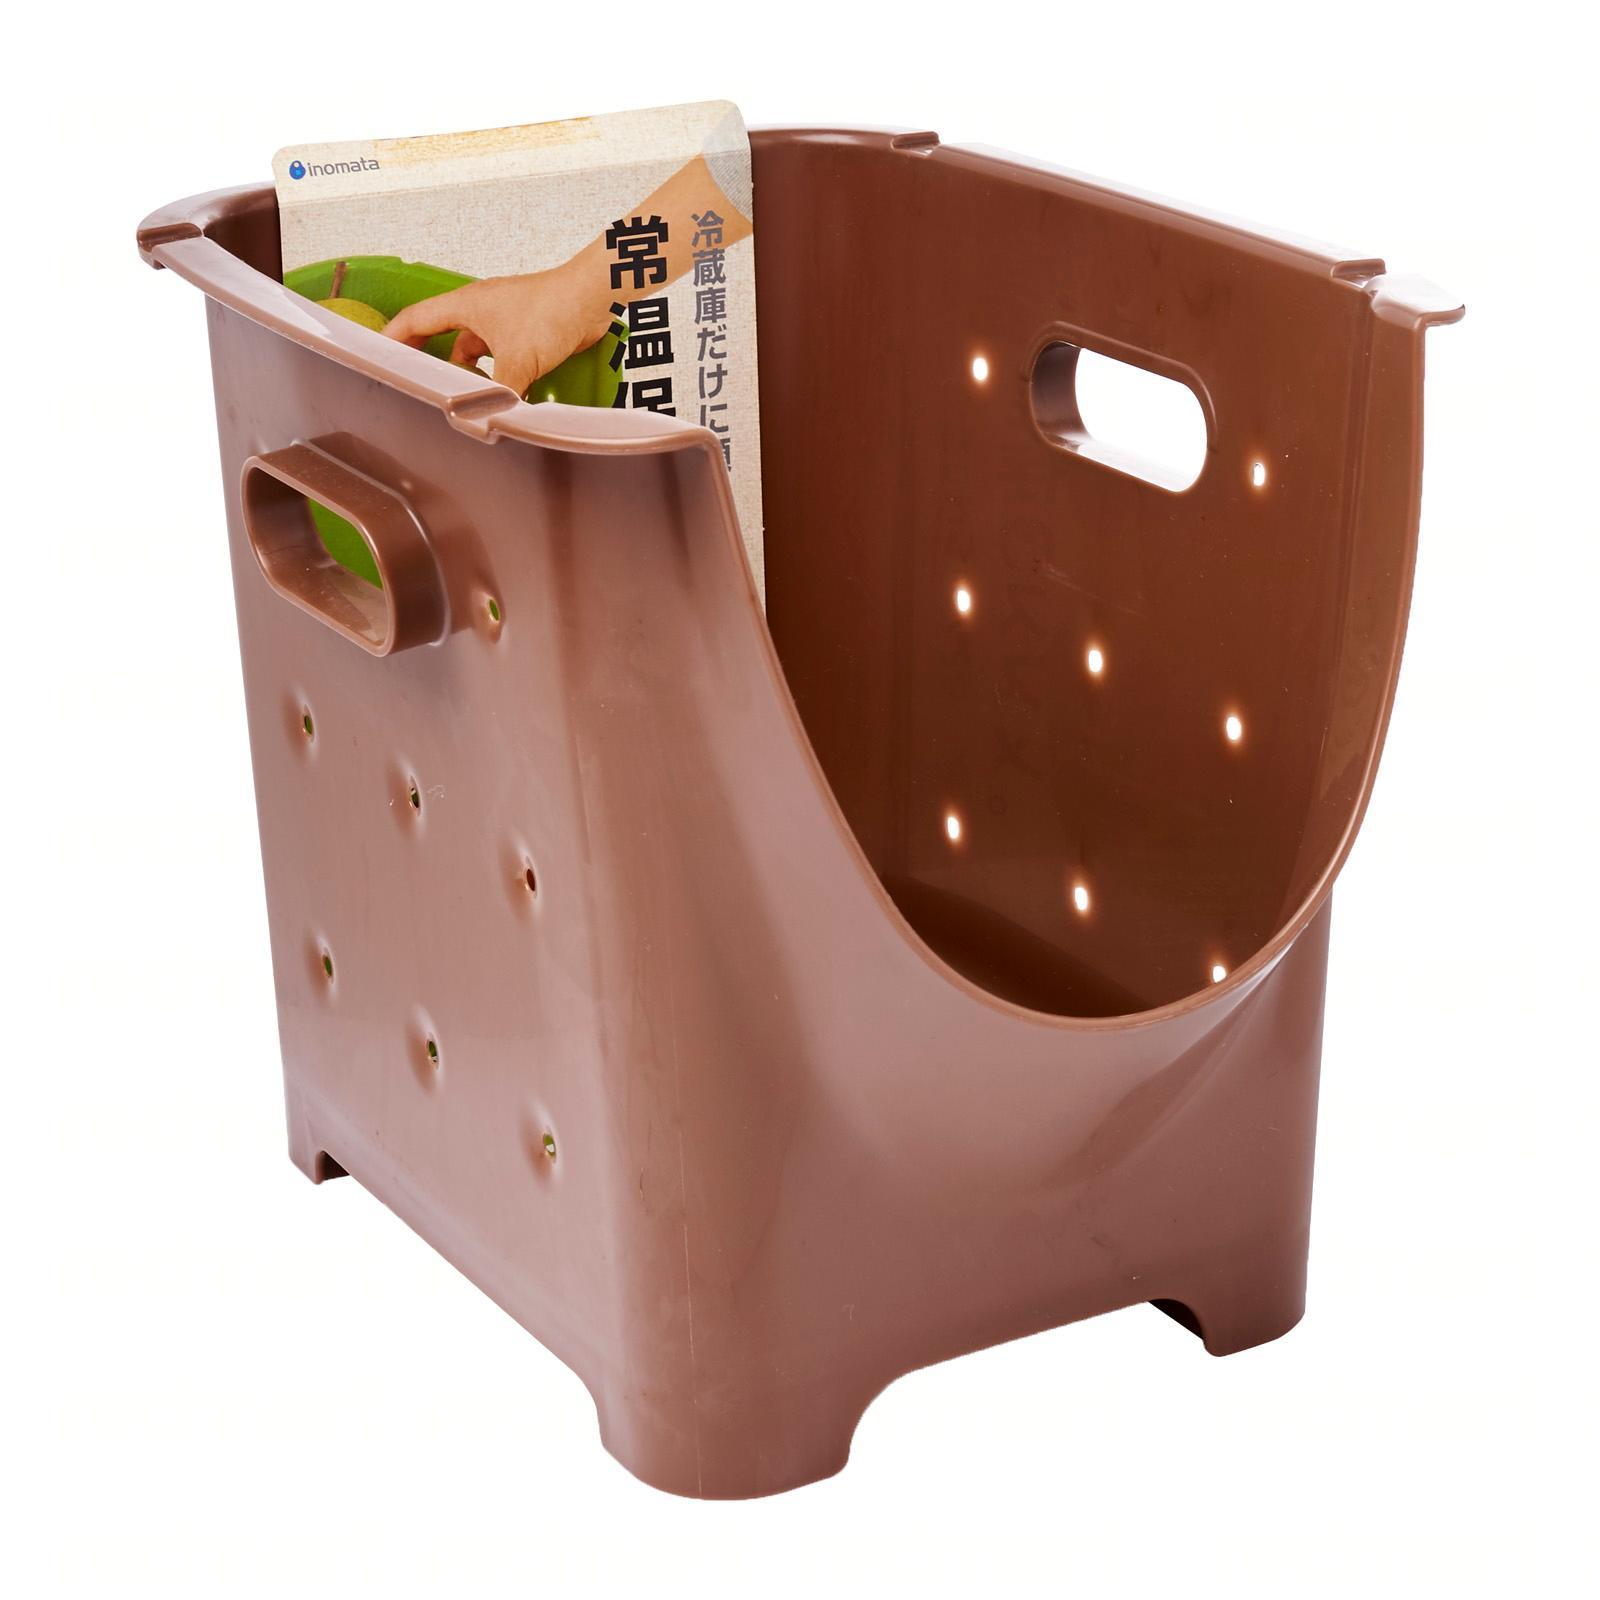 Vesta Vegetable Stocker (Brown) (21 X 29 X 23 CM)